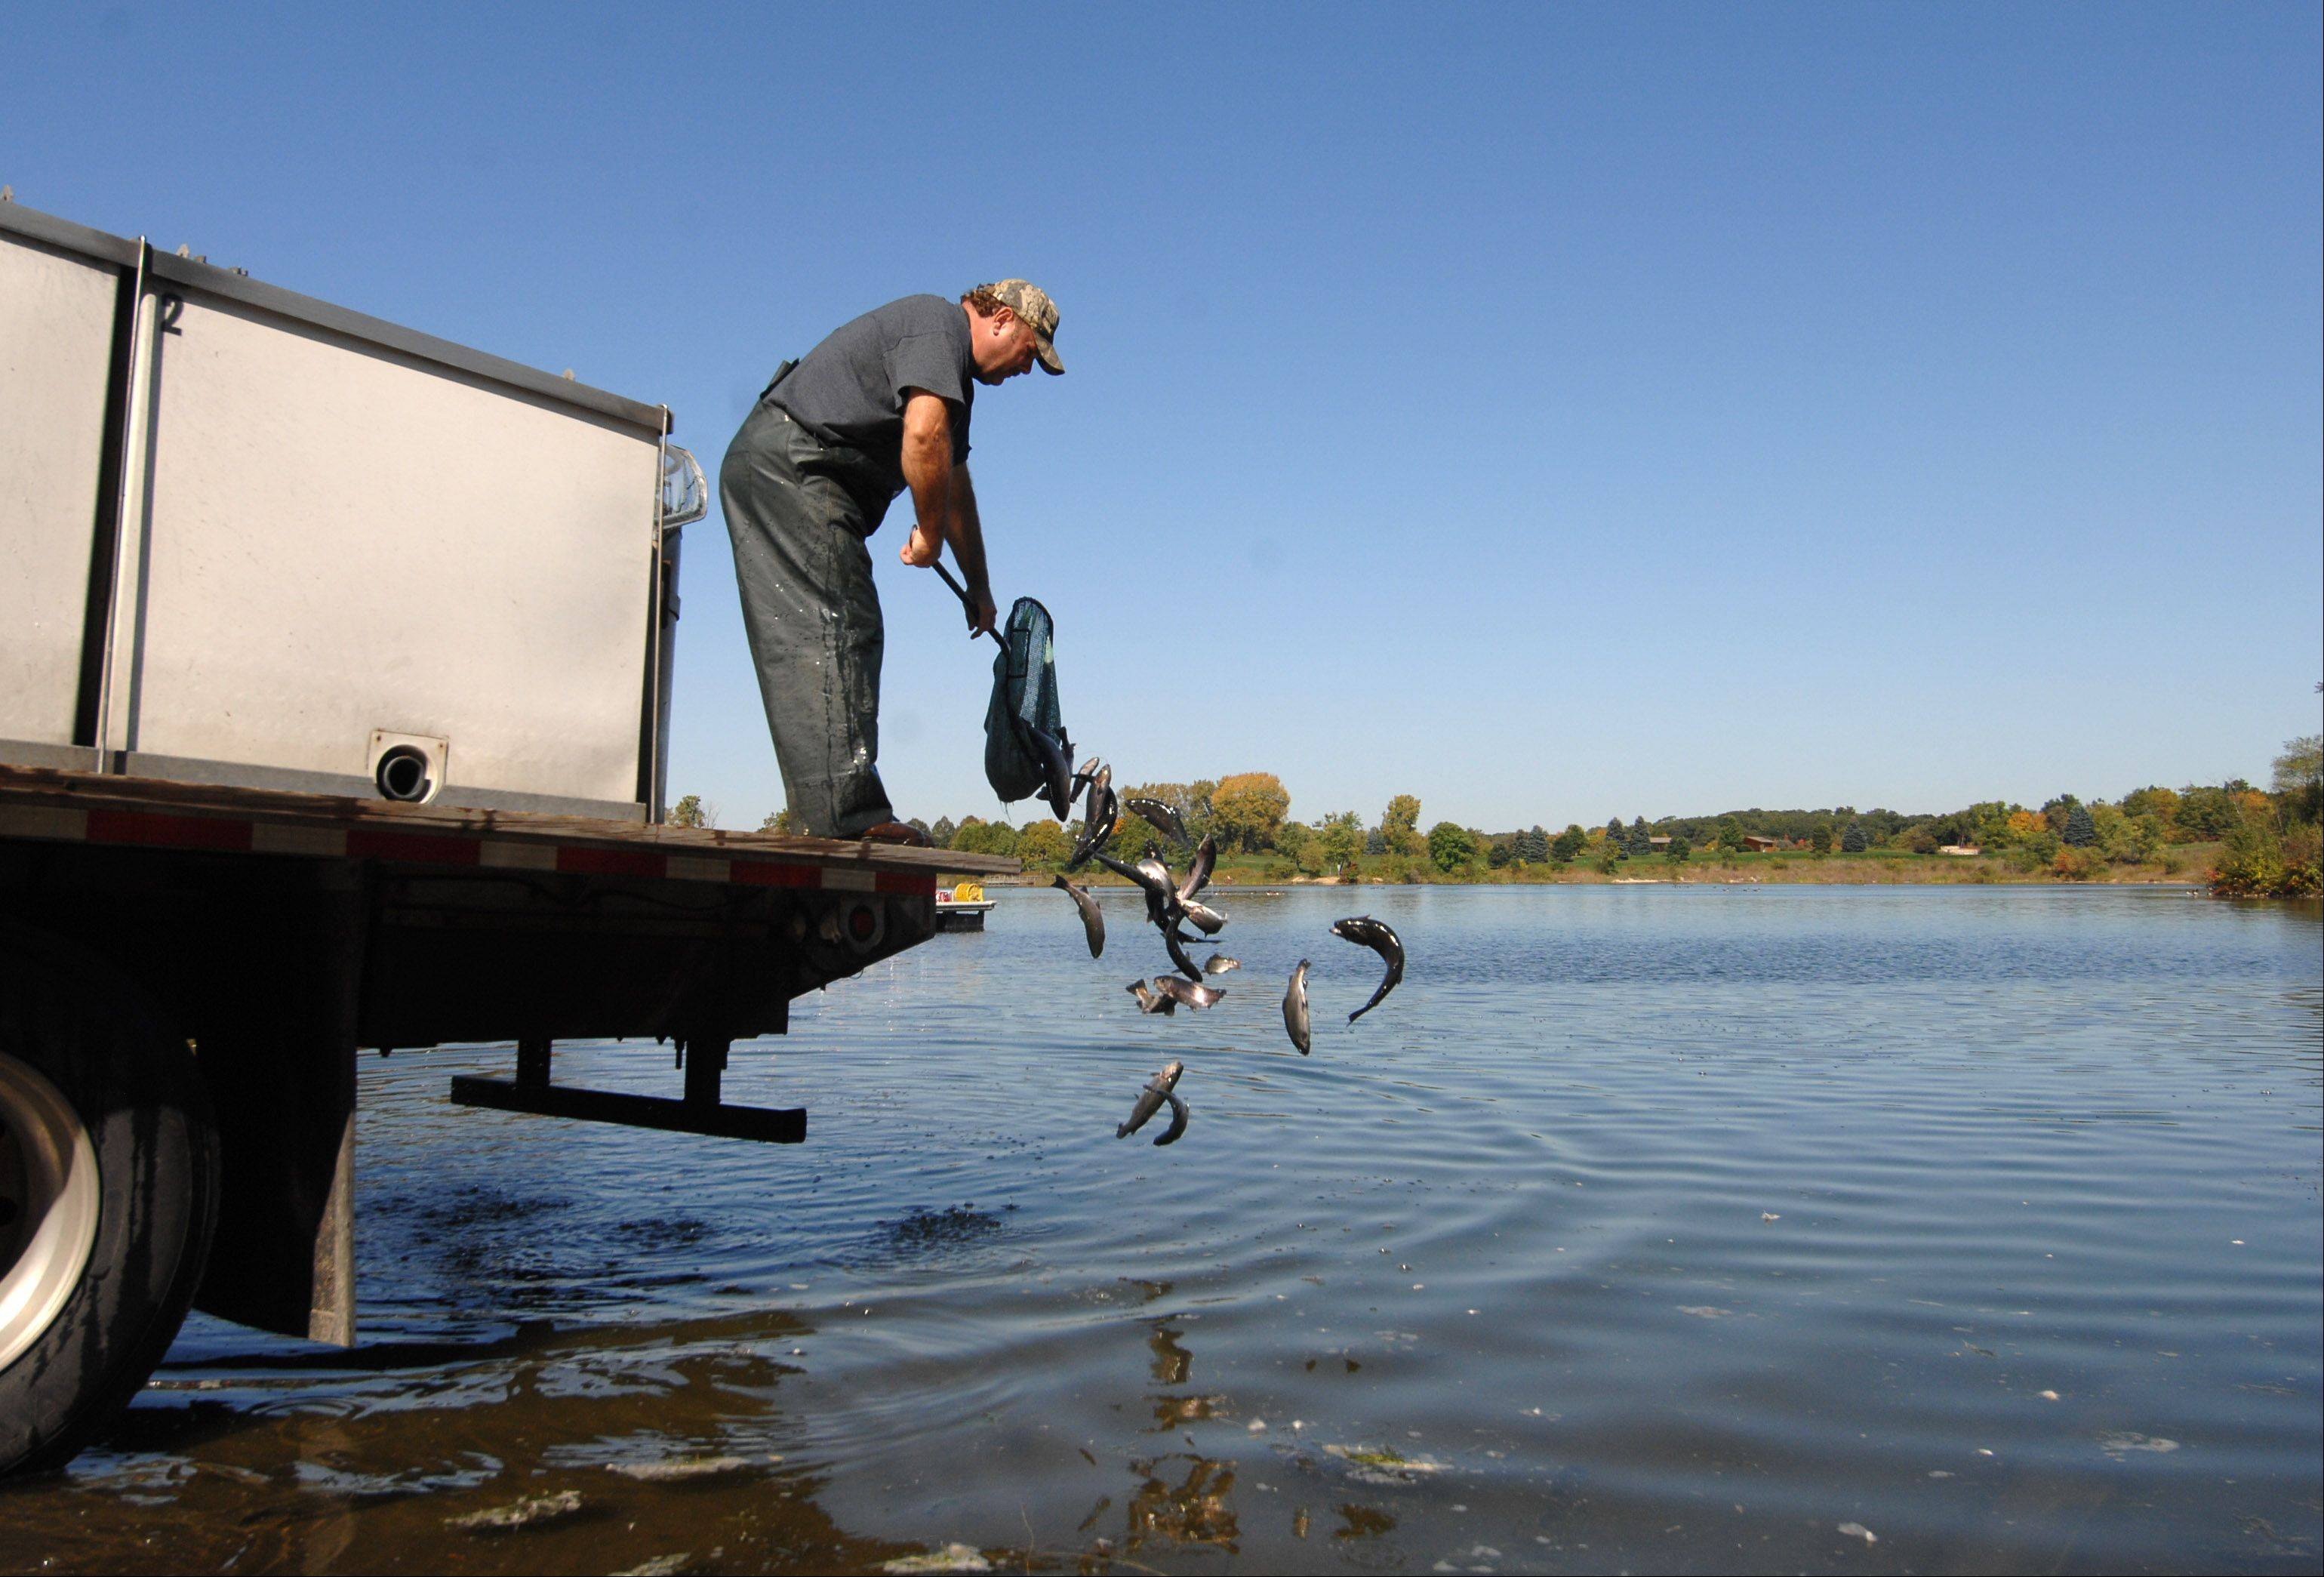 Kevin Pietschman of Keystone Hatcheries adds some of roughly 2,400 rainbow trout to Silver Lake at Blackwell Forest Preserve near Warrenville. Trout season opens at 6 a.m. Oct. 15.